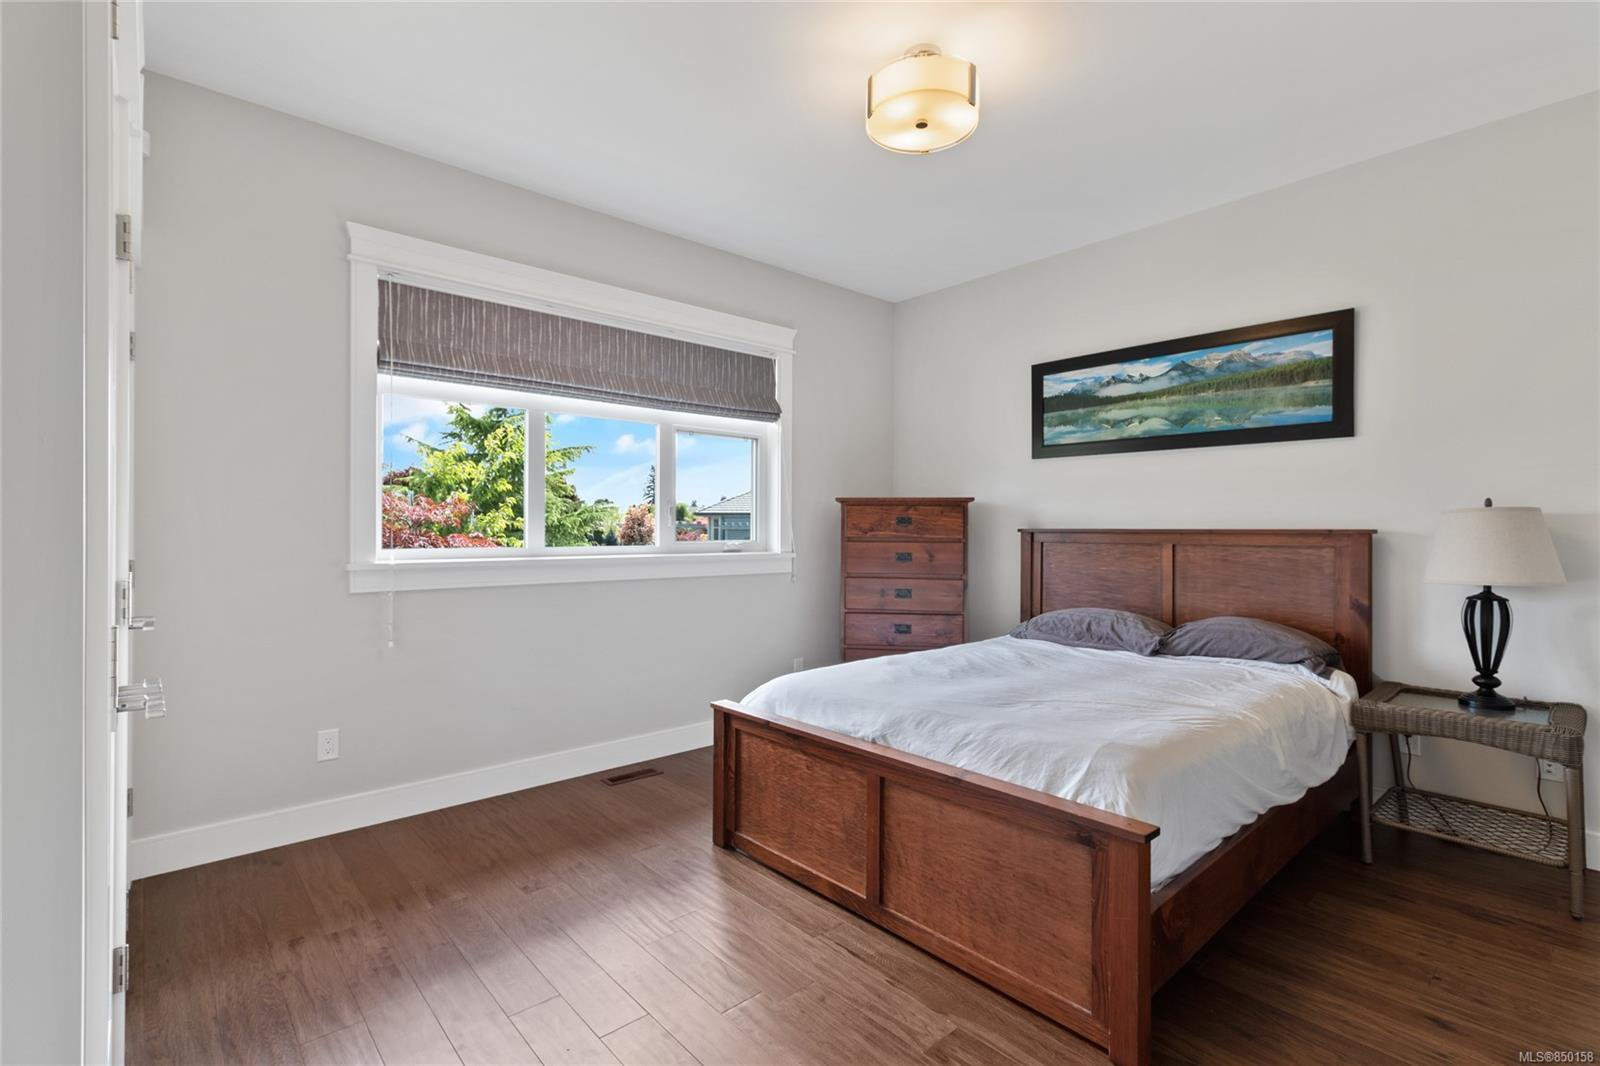 Photo 18: Photos: 3228 Majestic Dr in : CV Crown Isle House for sale (Comox Valley)  : MLS®# 850158